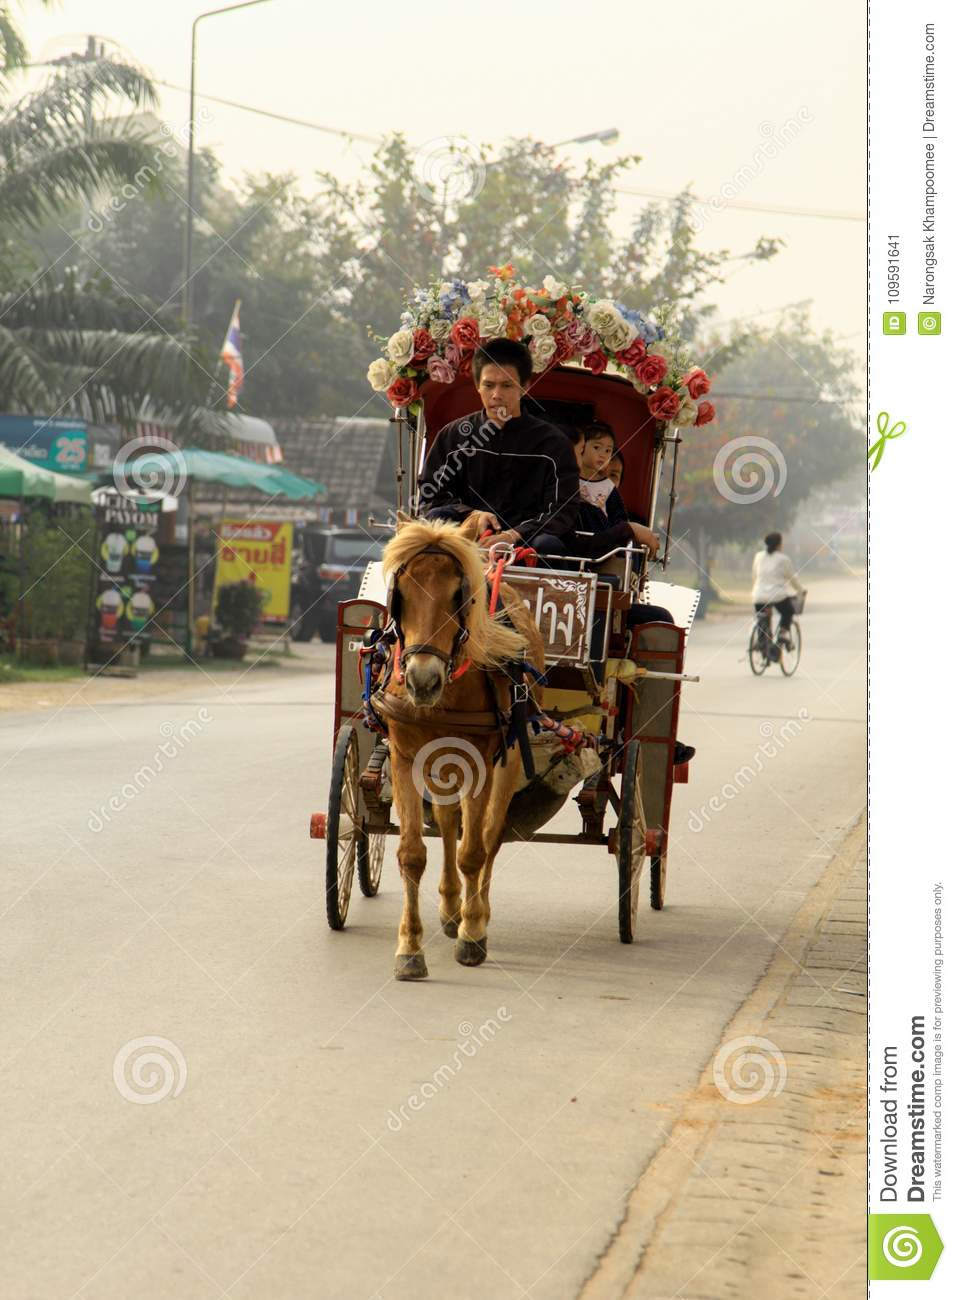 The horse carriage with people in Lampang at Wat Phra That Lampang Luang, horse-drawn carriage ride for tourists to travel near t